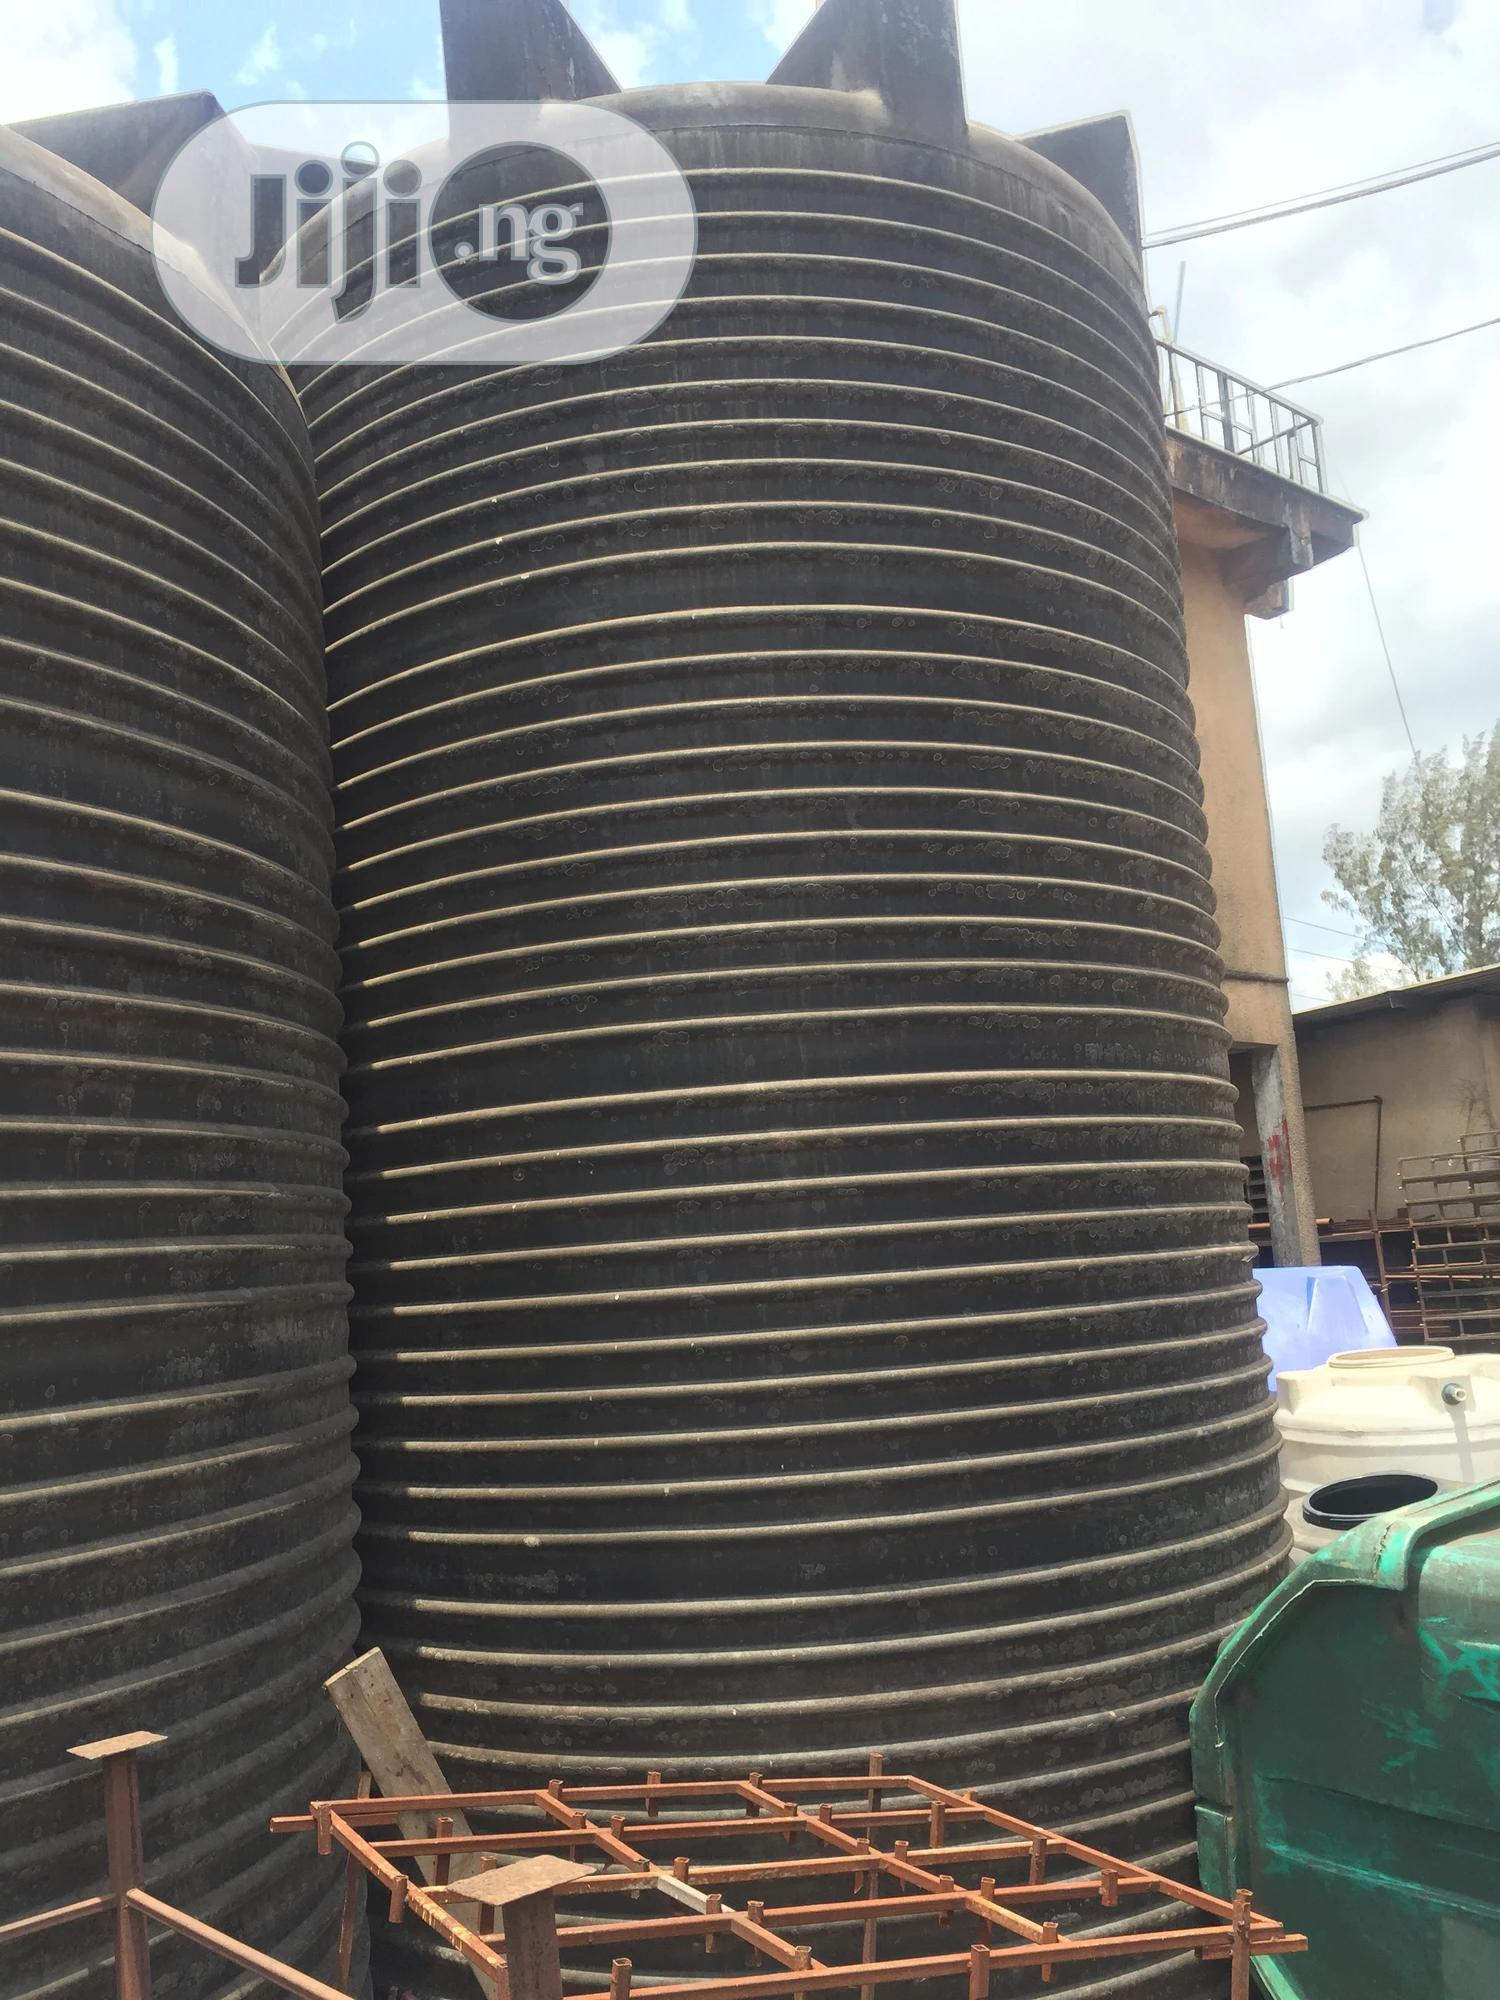 Geepee Storage Tank 30,000 Liters | Plumbing & Water Supply for sale in Orile, Lagos State, Nigeria